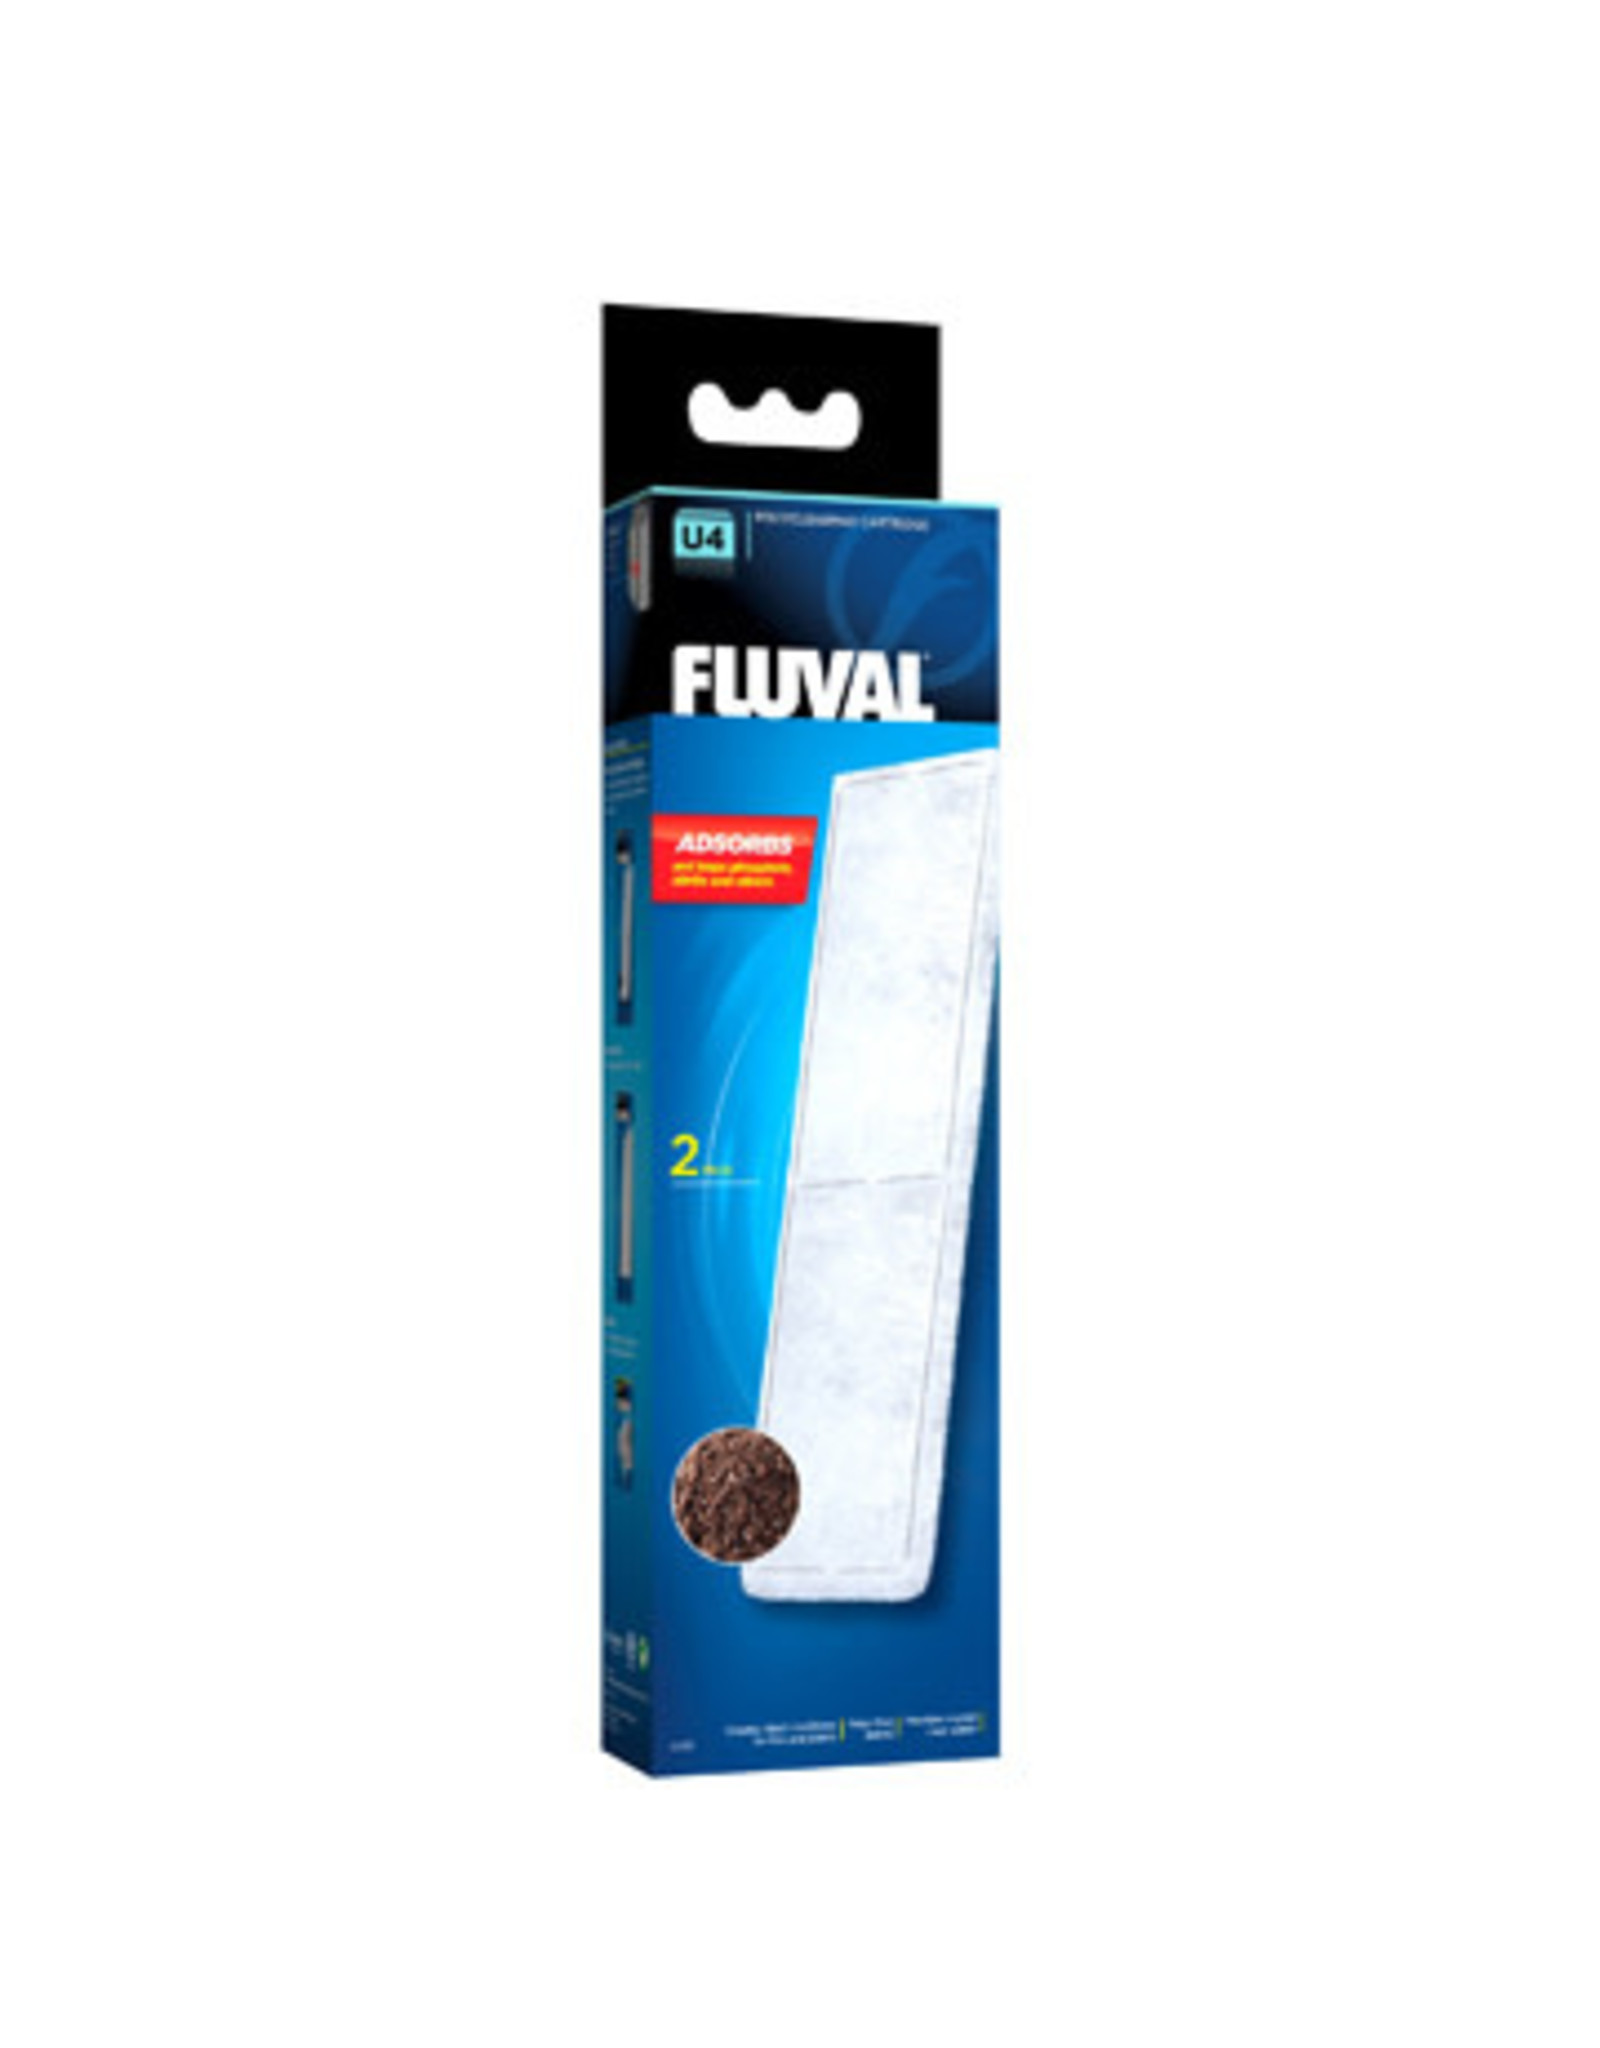 Fluval Fluval U4 Filter Media - Poly/Clearmax Cartridge - 2-pack